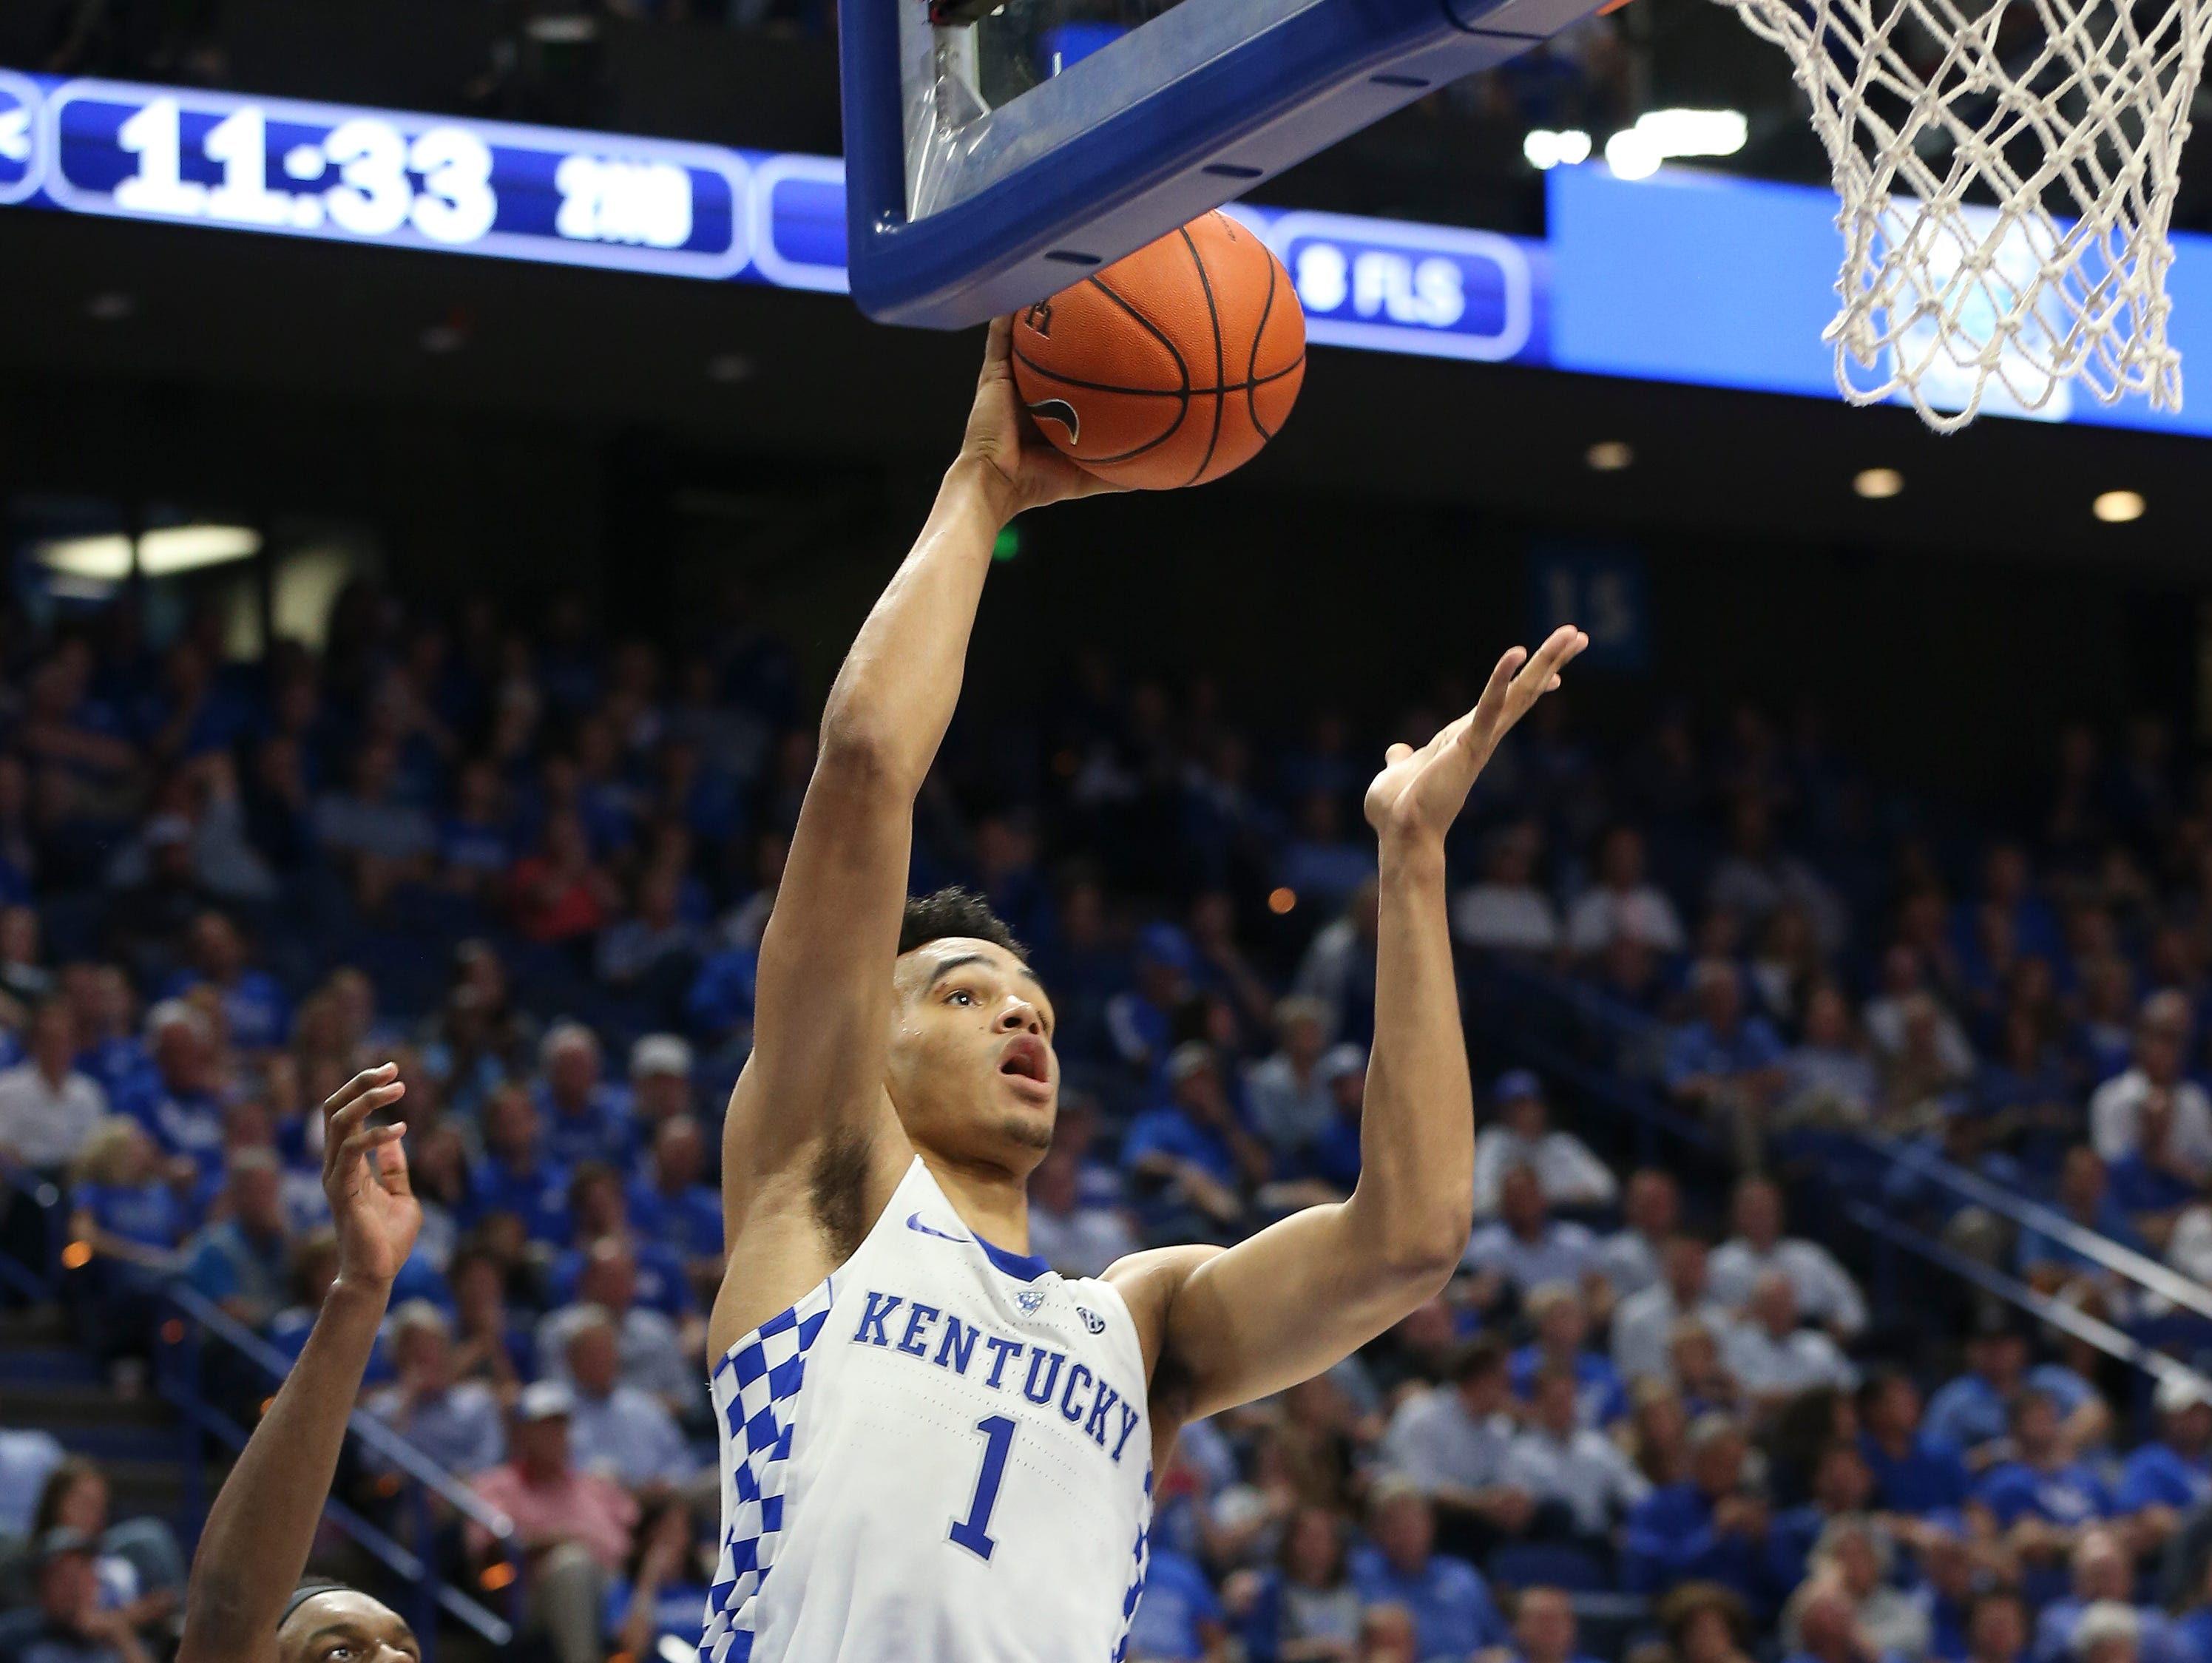 UK's Sacha Killeya-Jones (1) scores on a put back against Clarion during their game at Rupp Arena. Oct. 30, 2016